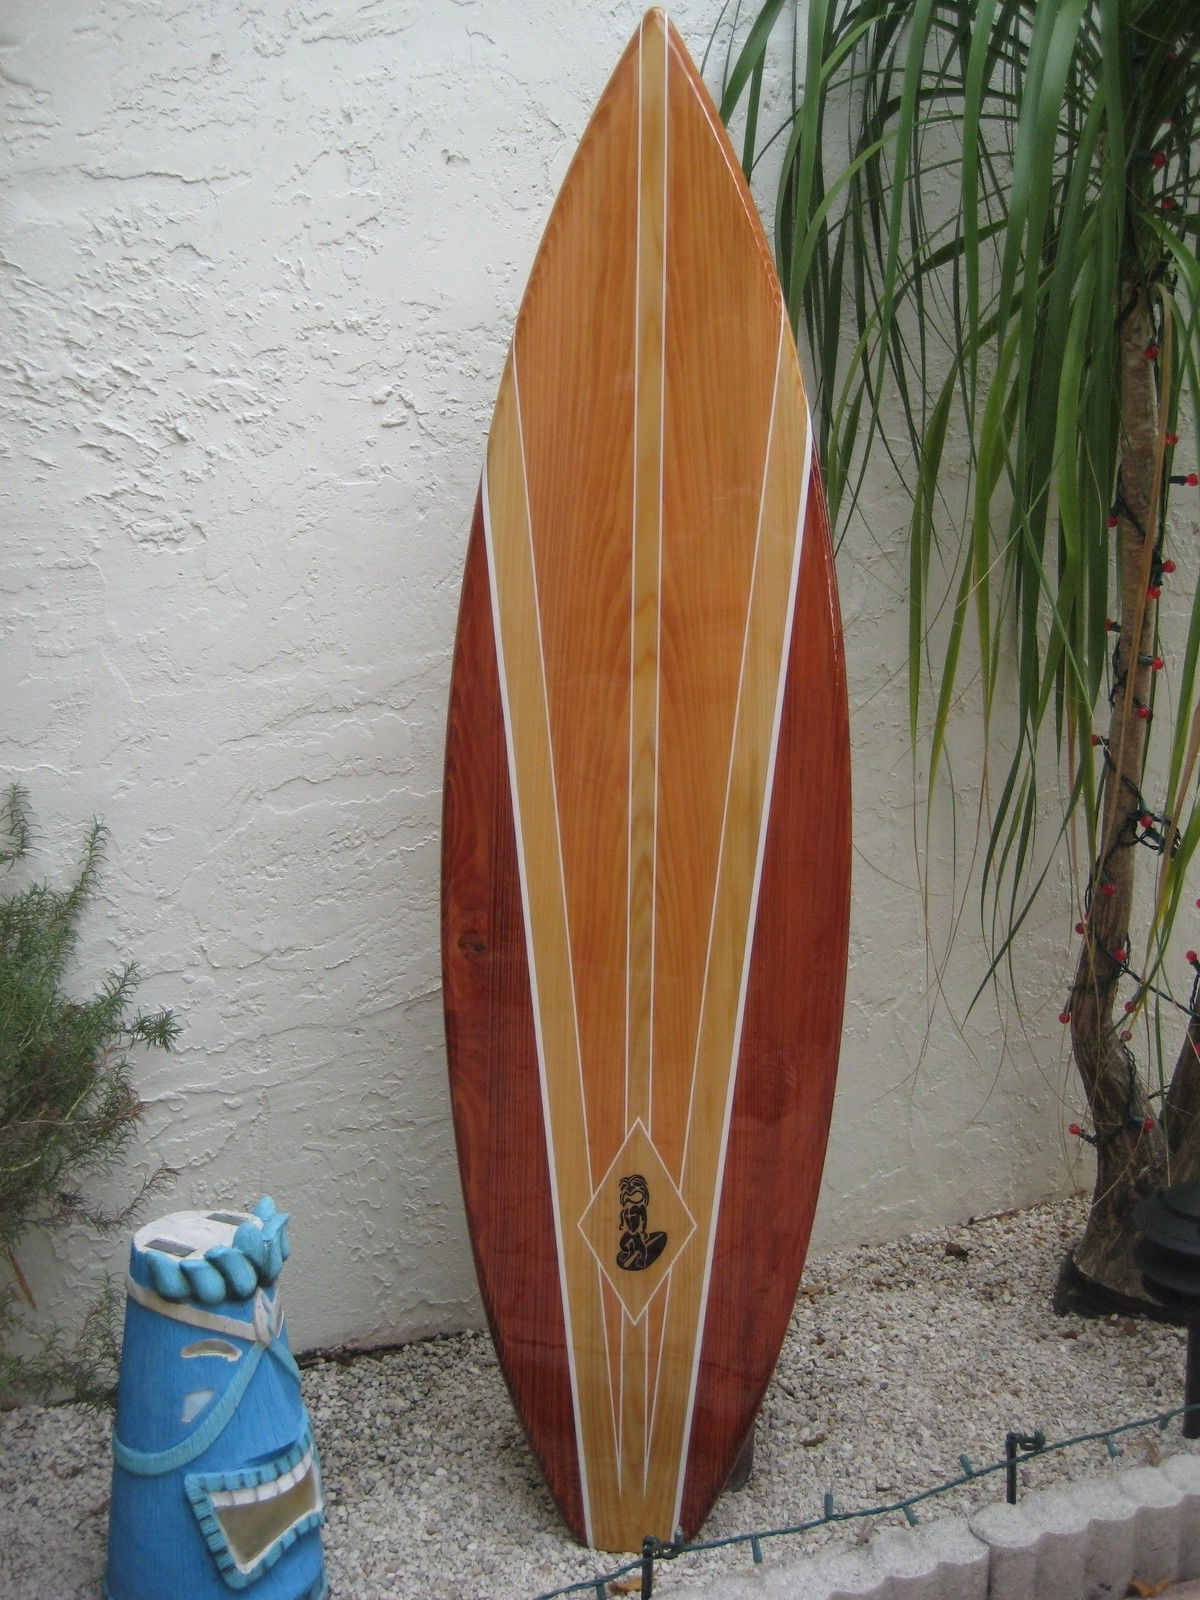 Surfboard Wall Art Within Most Recent Tropical Decorative Wood Surfboard Wall Art For A Coastal Beach Home (View 18 of 20)